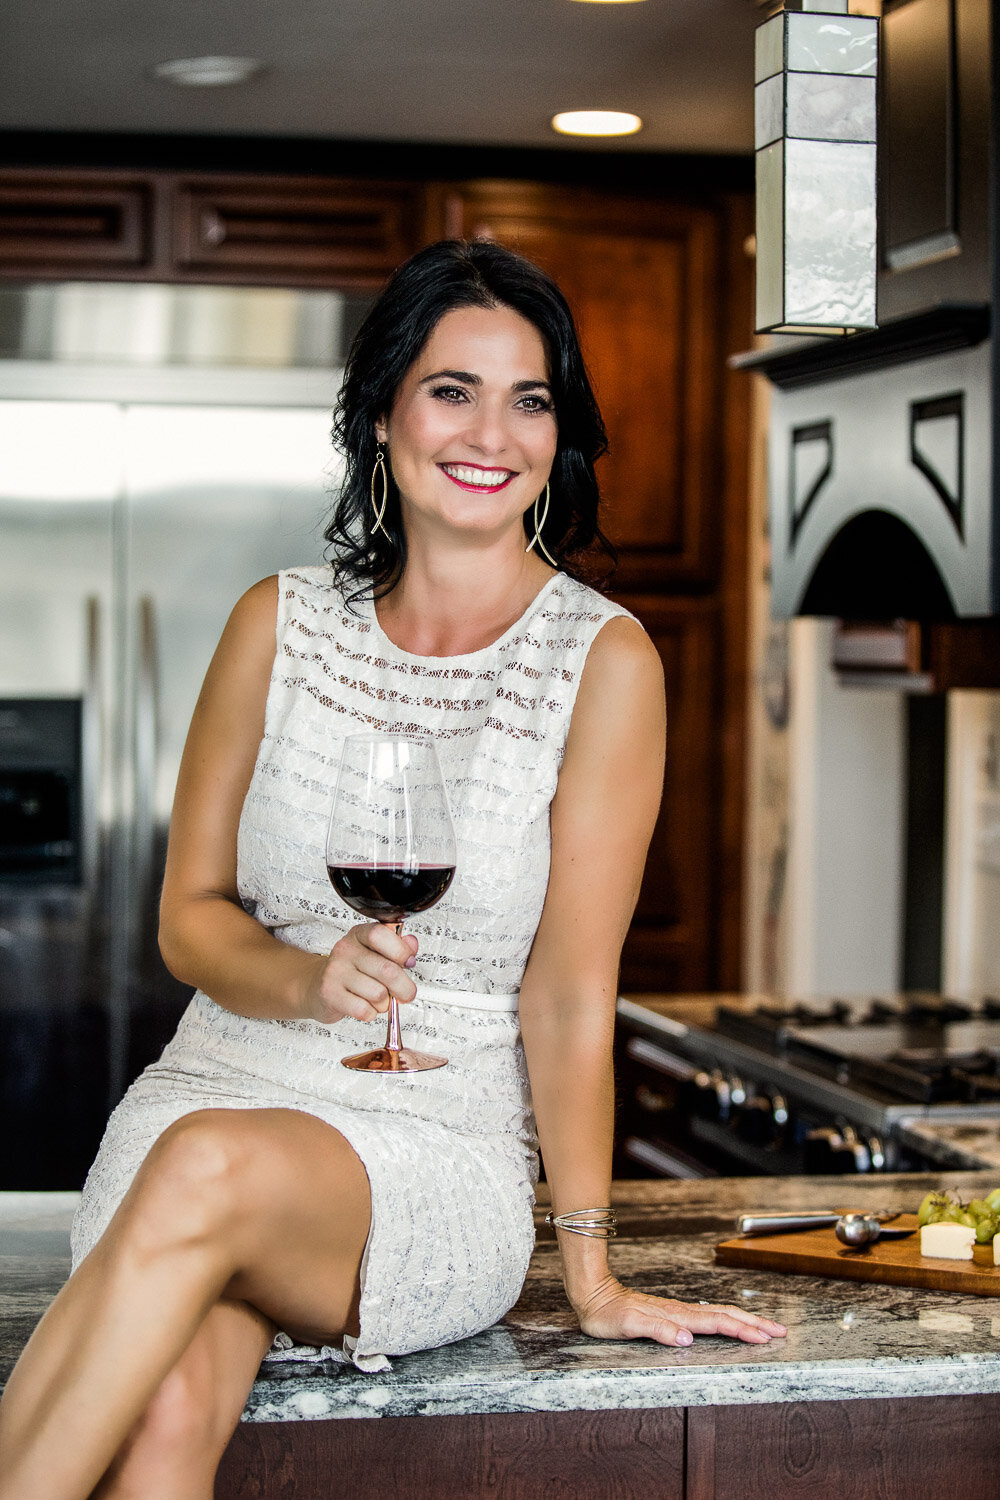 Woman sitting on kitchen counter with glass of wine